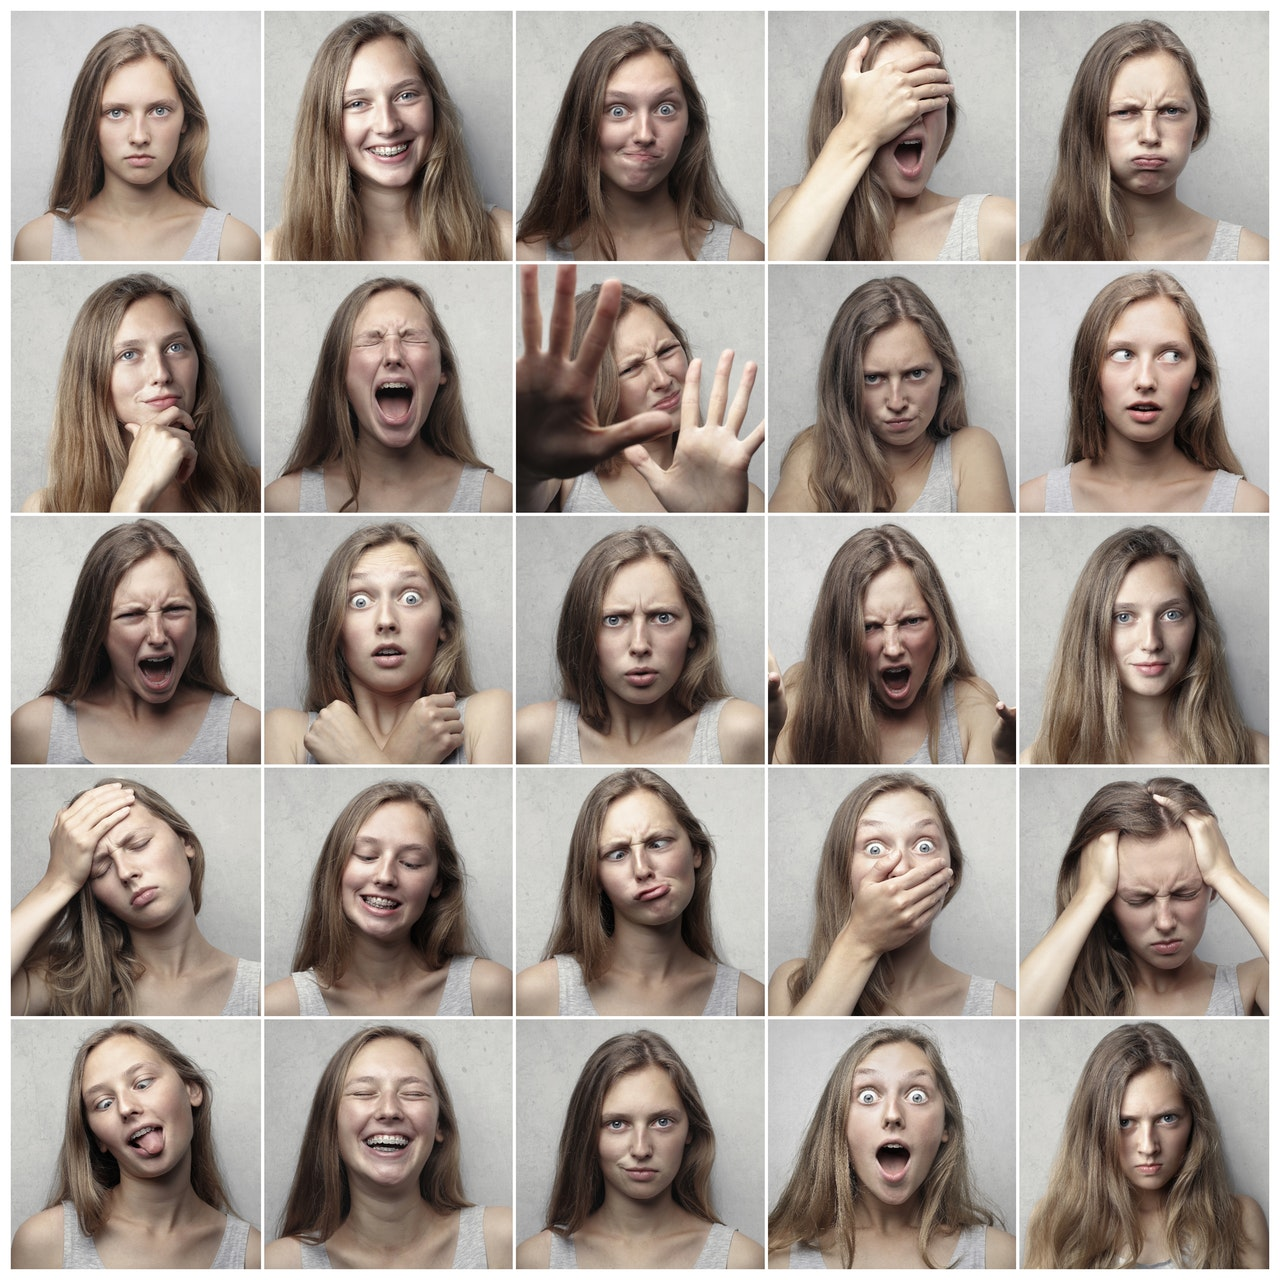 Collage Photo of Faces Showing Emotion